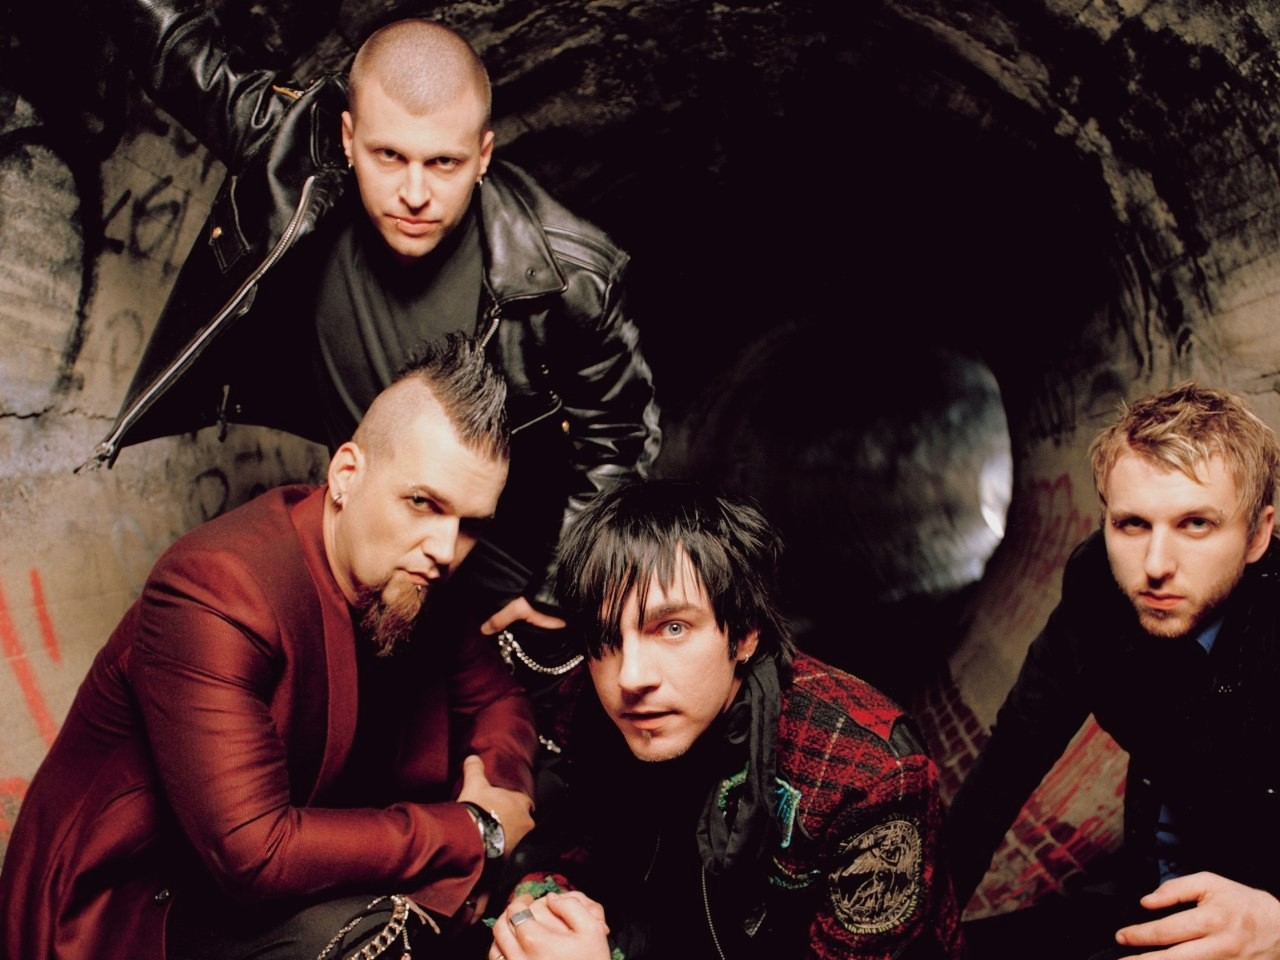 Three Days Grace Wallpapers HD Download 1280x960